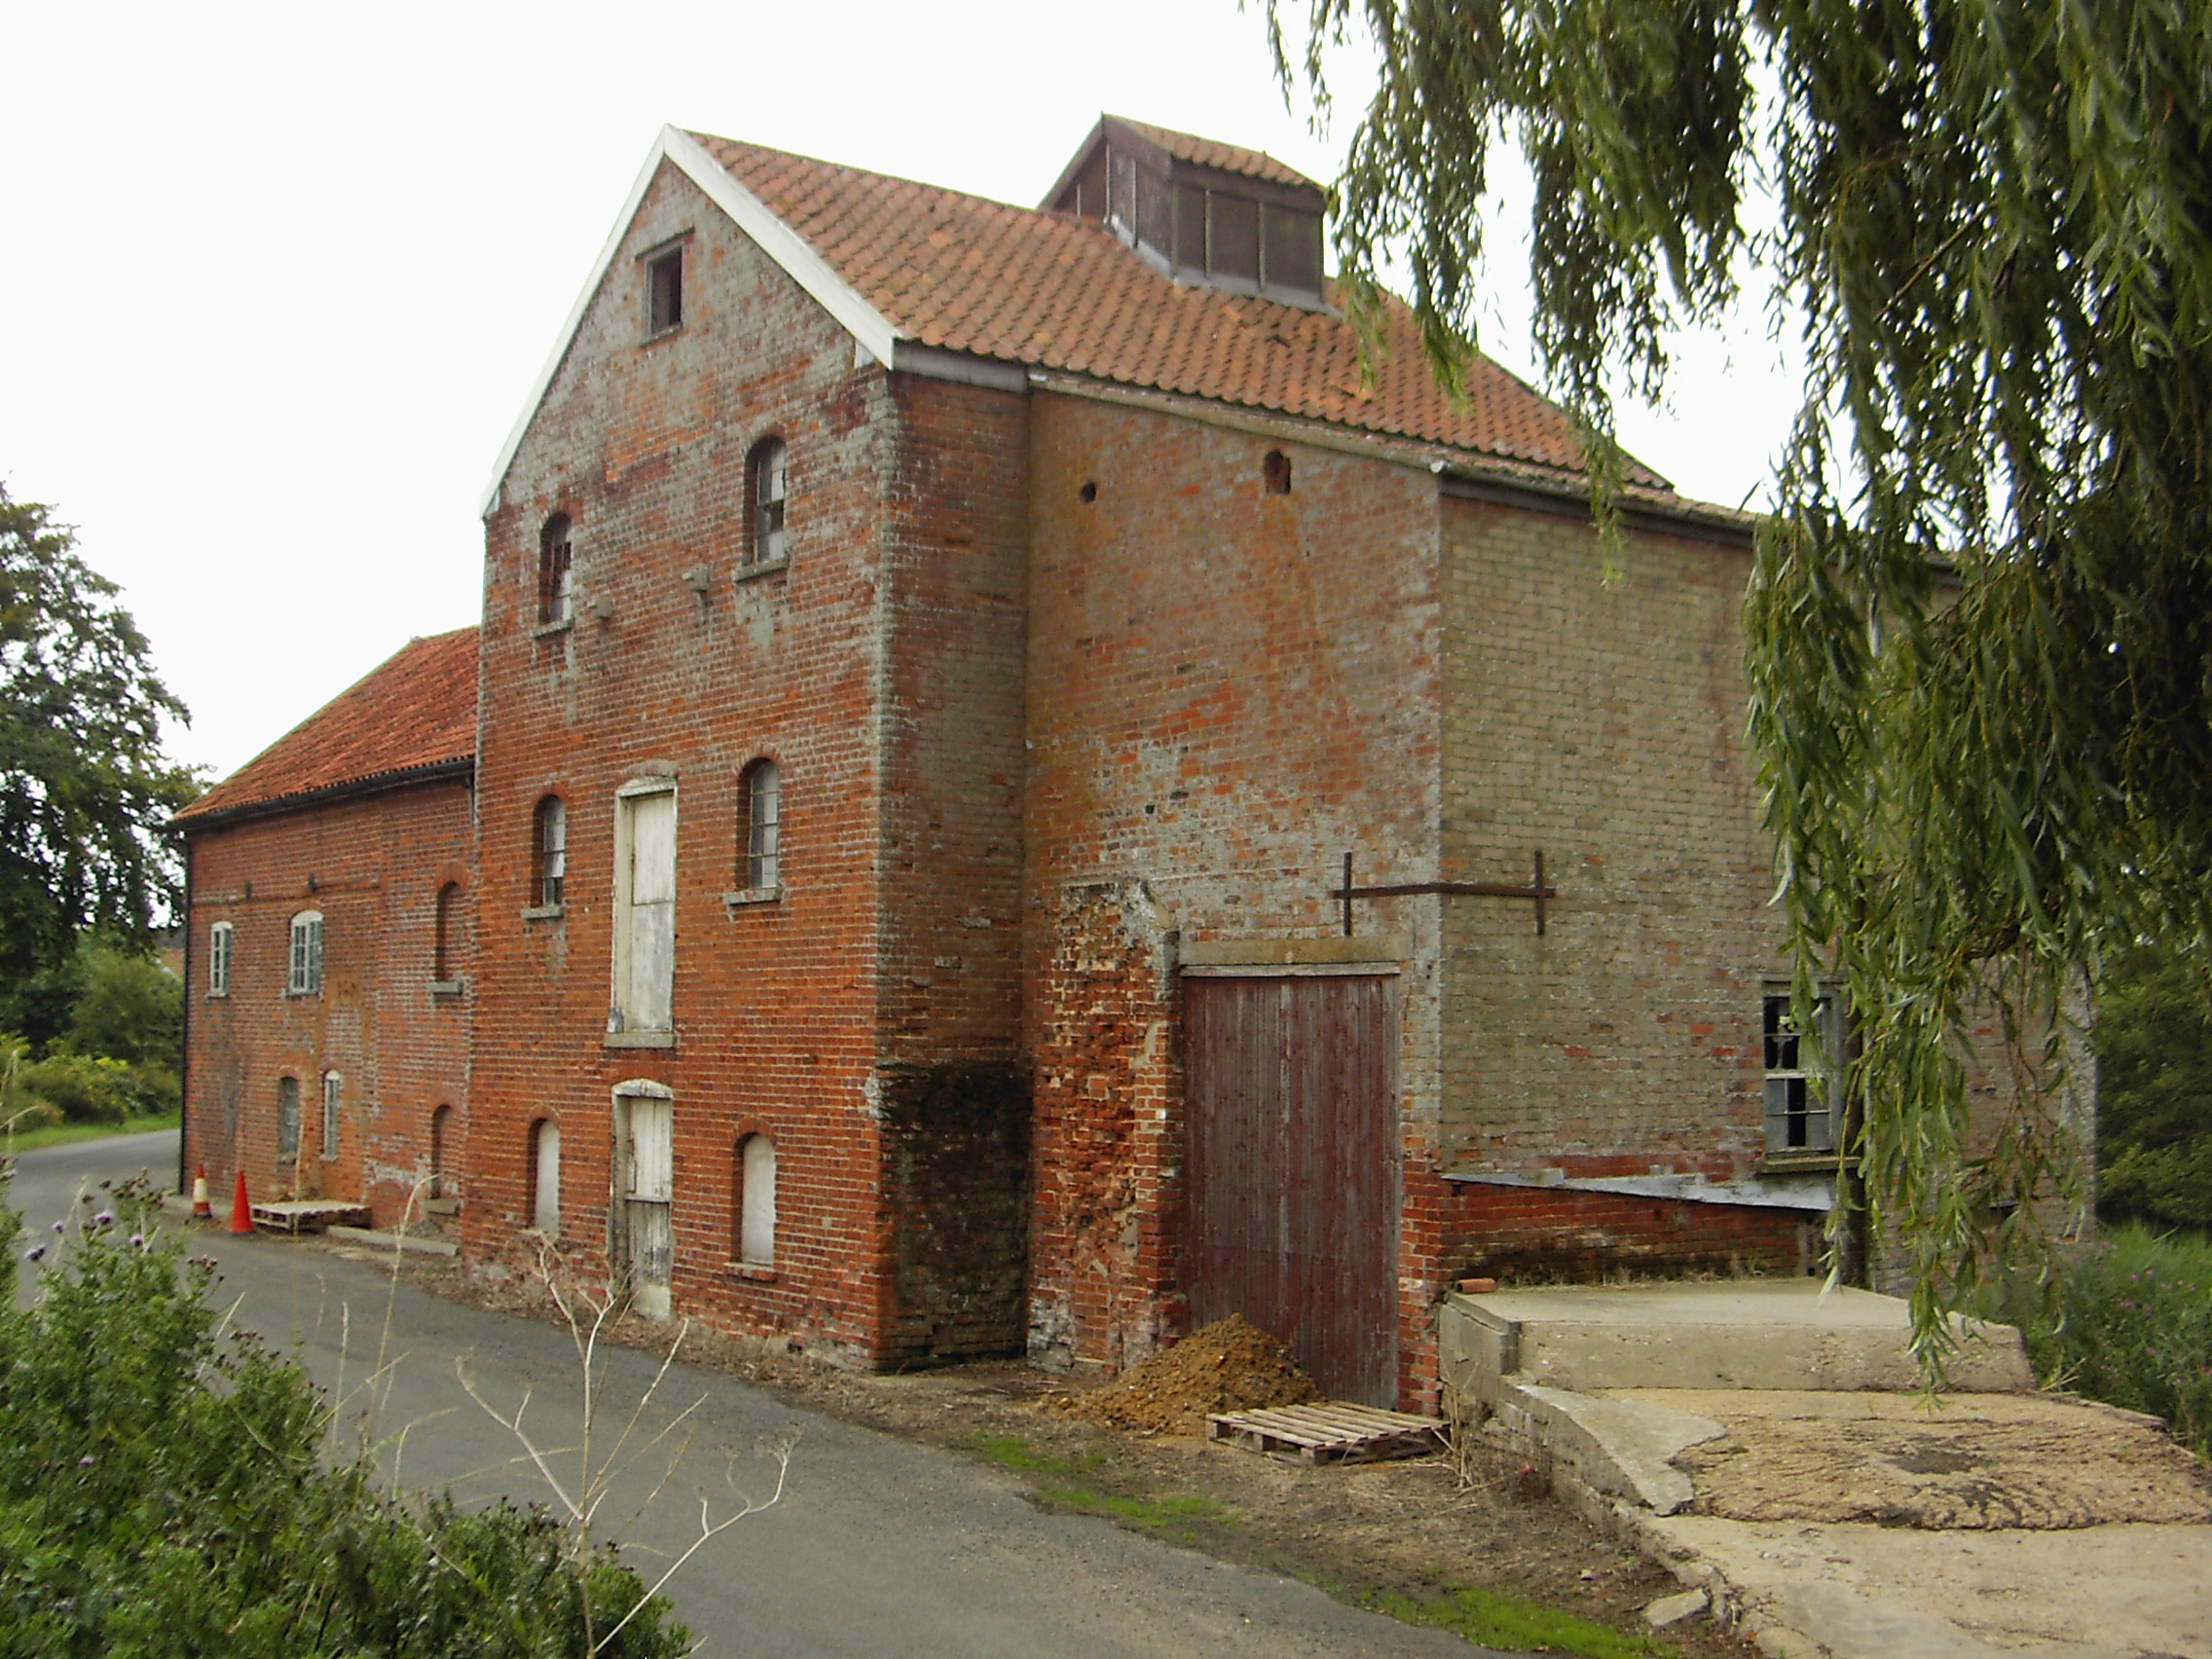 This image shows the building in it's previous unrestored state.